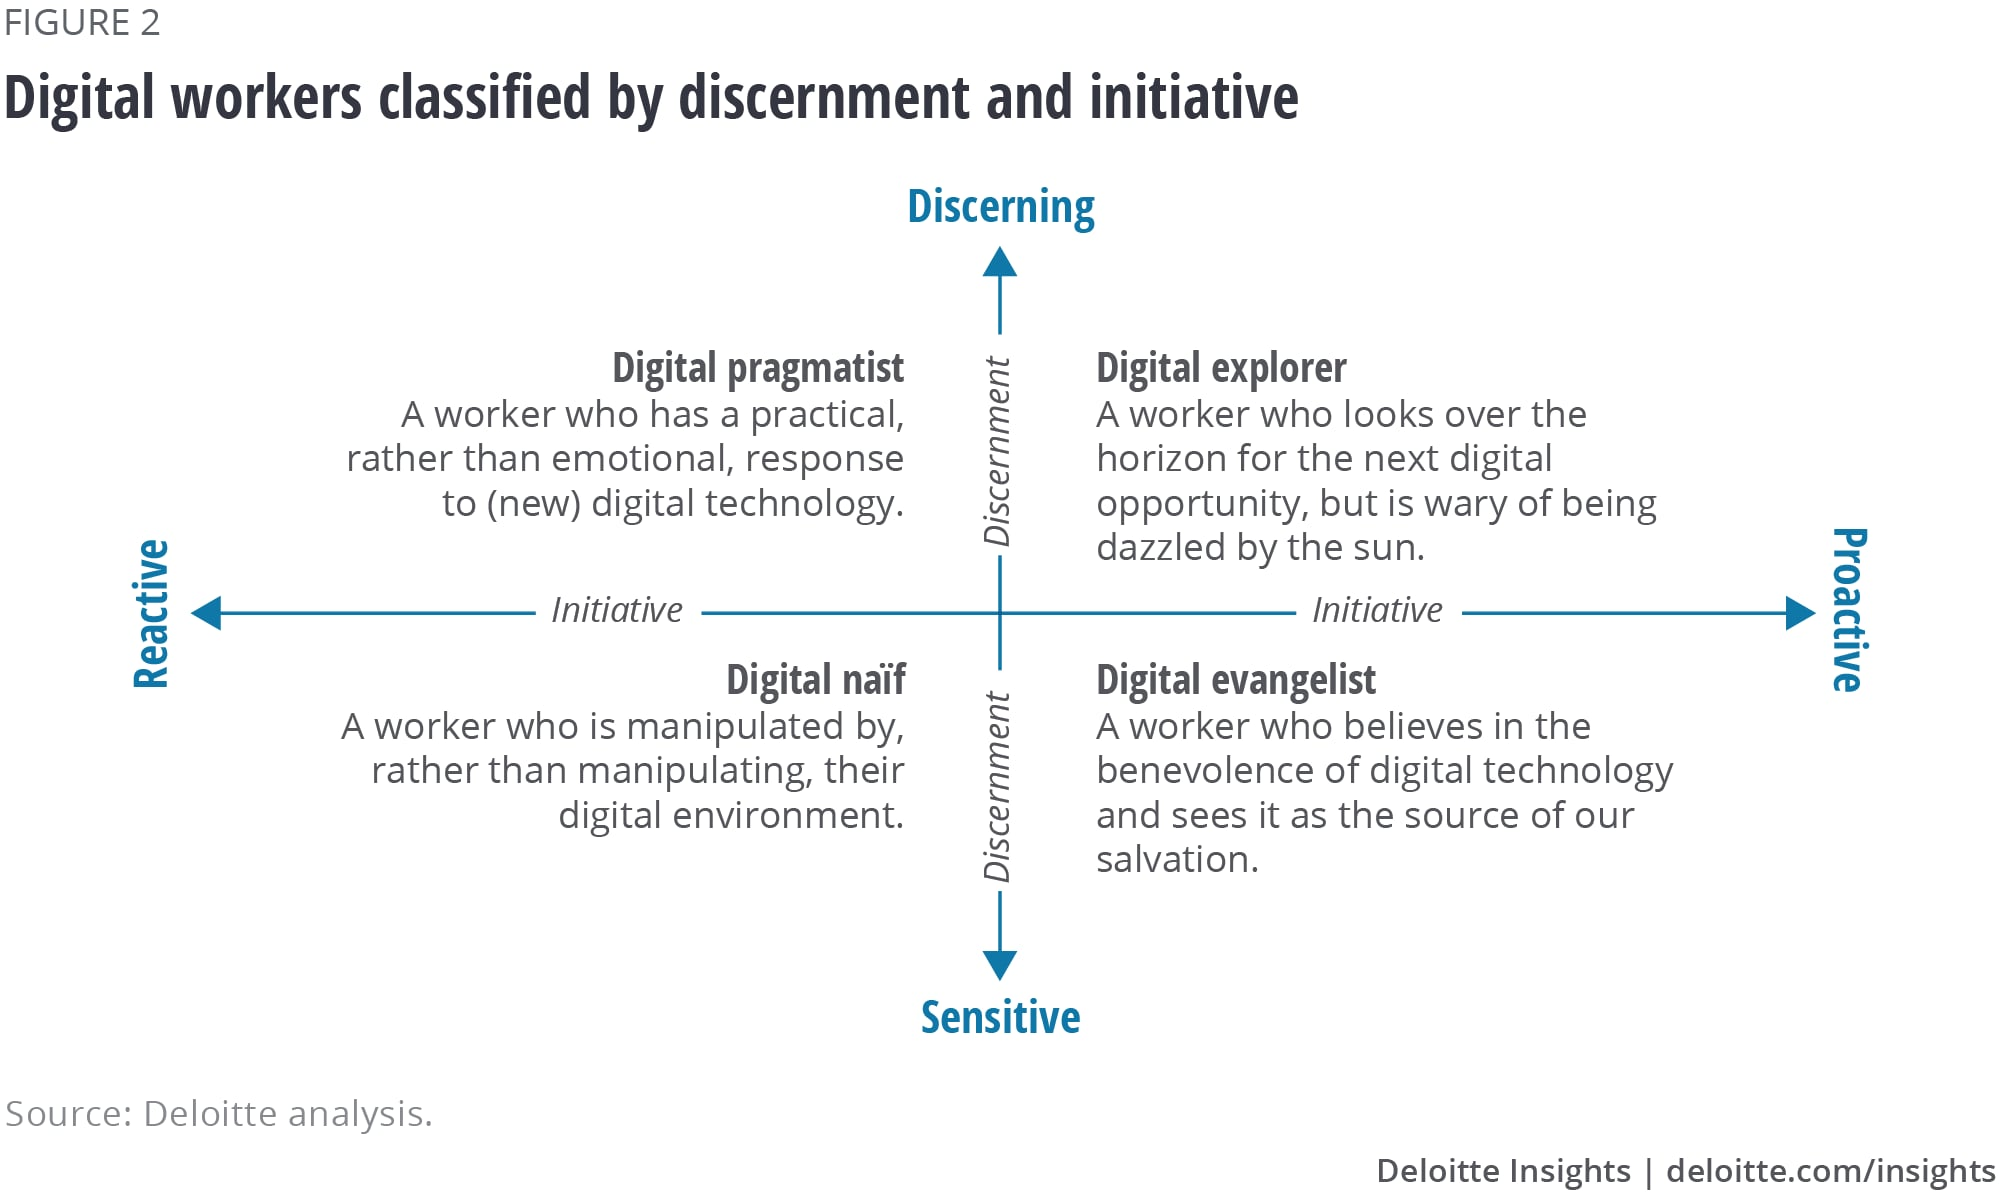 Digital workers classified by discernment and initiative